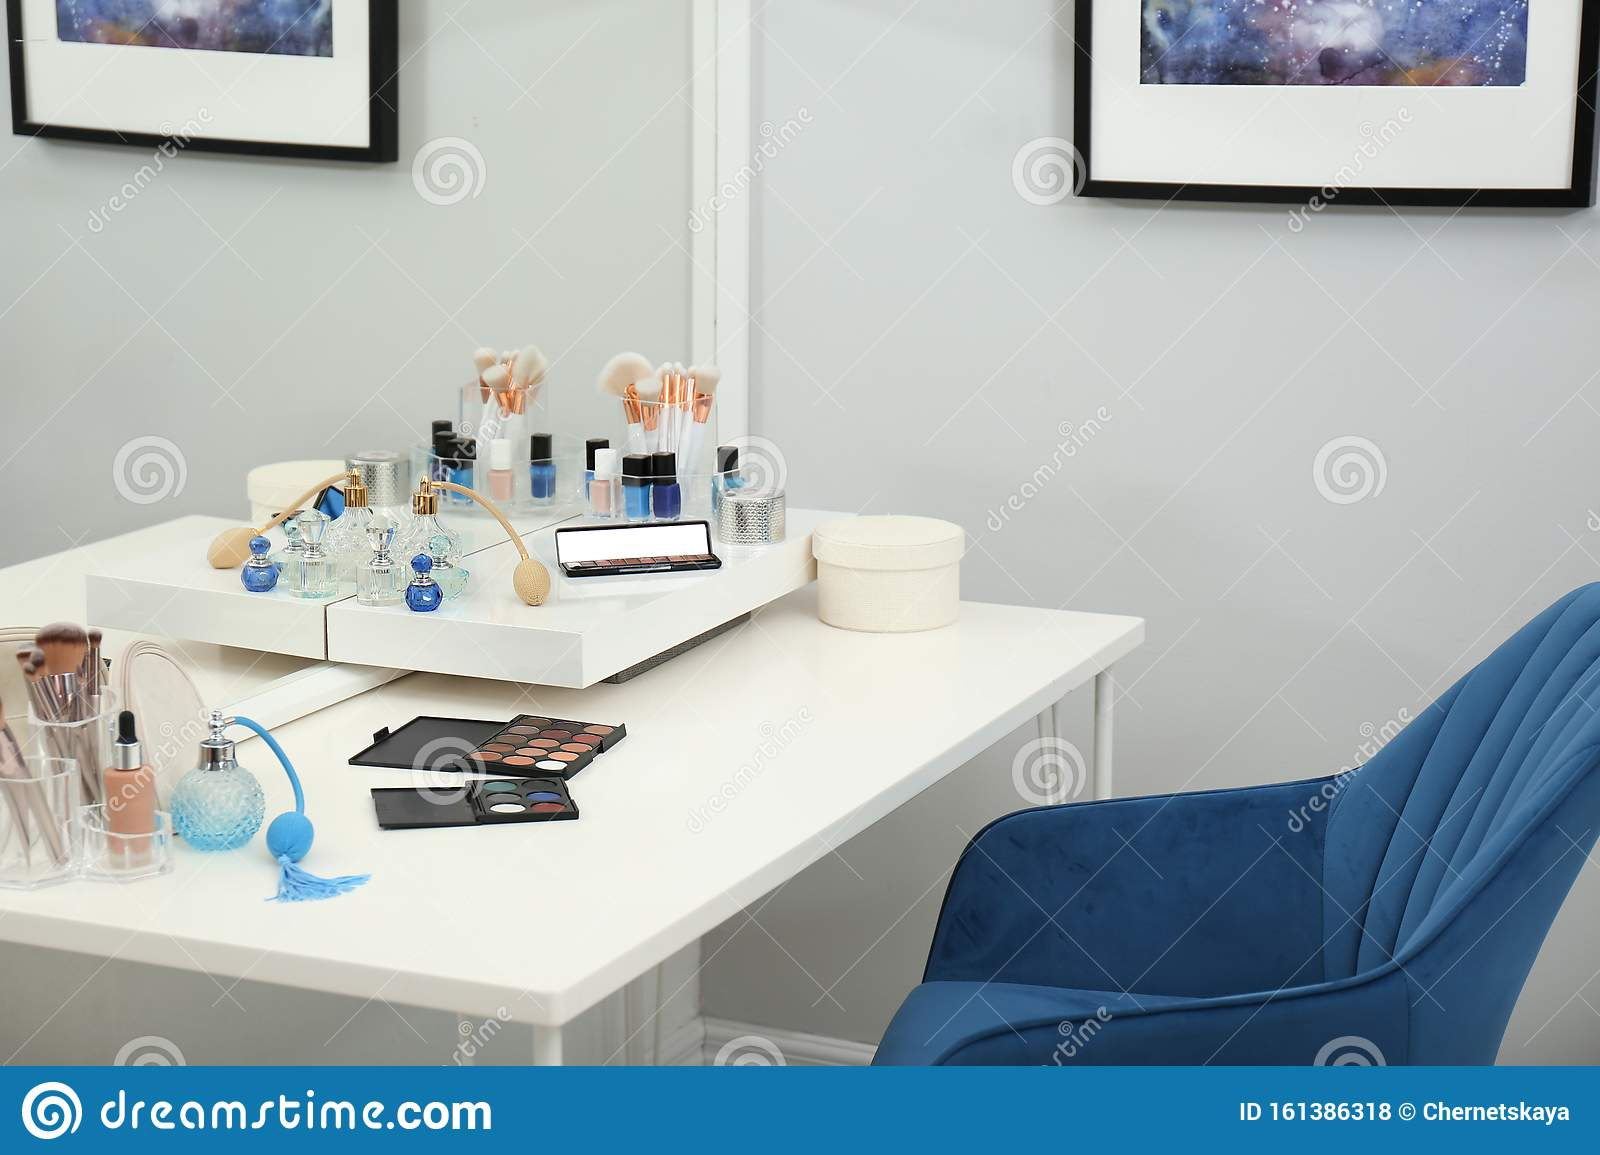 Blue Armchair Near Dressing Table With Makeup Products Stock Photo